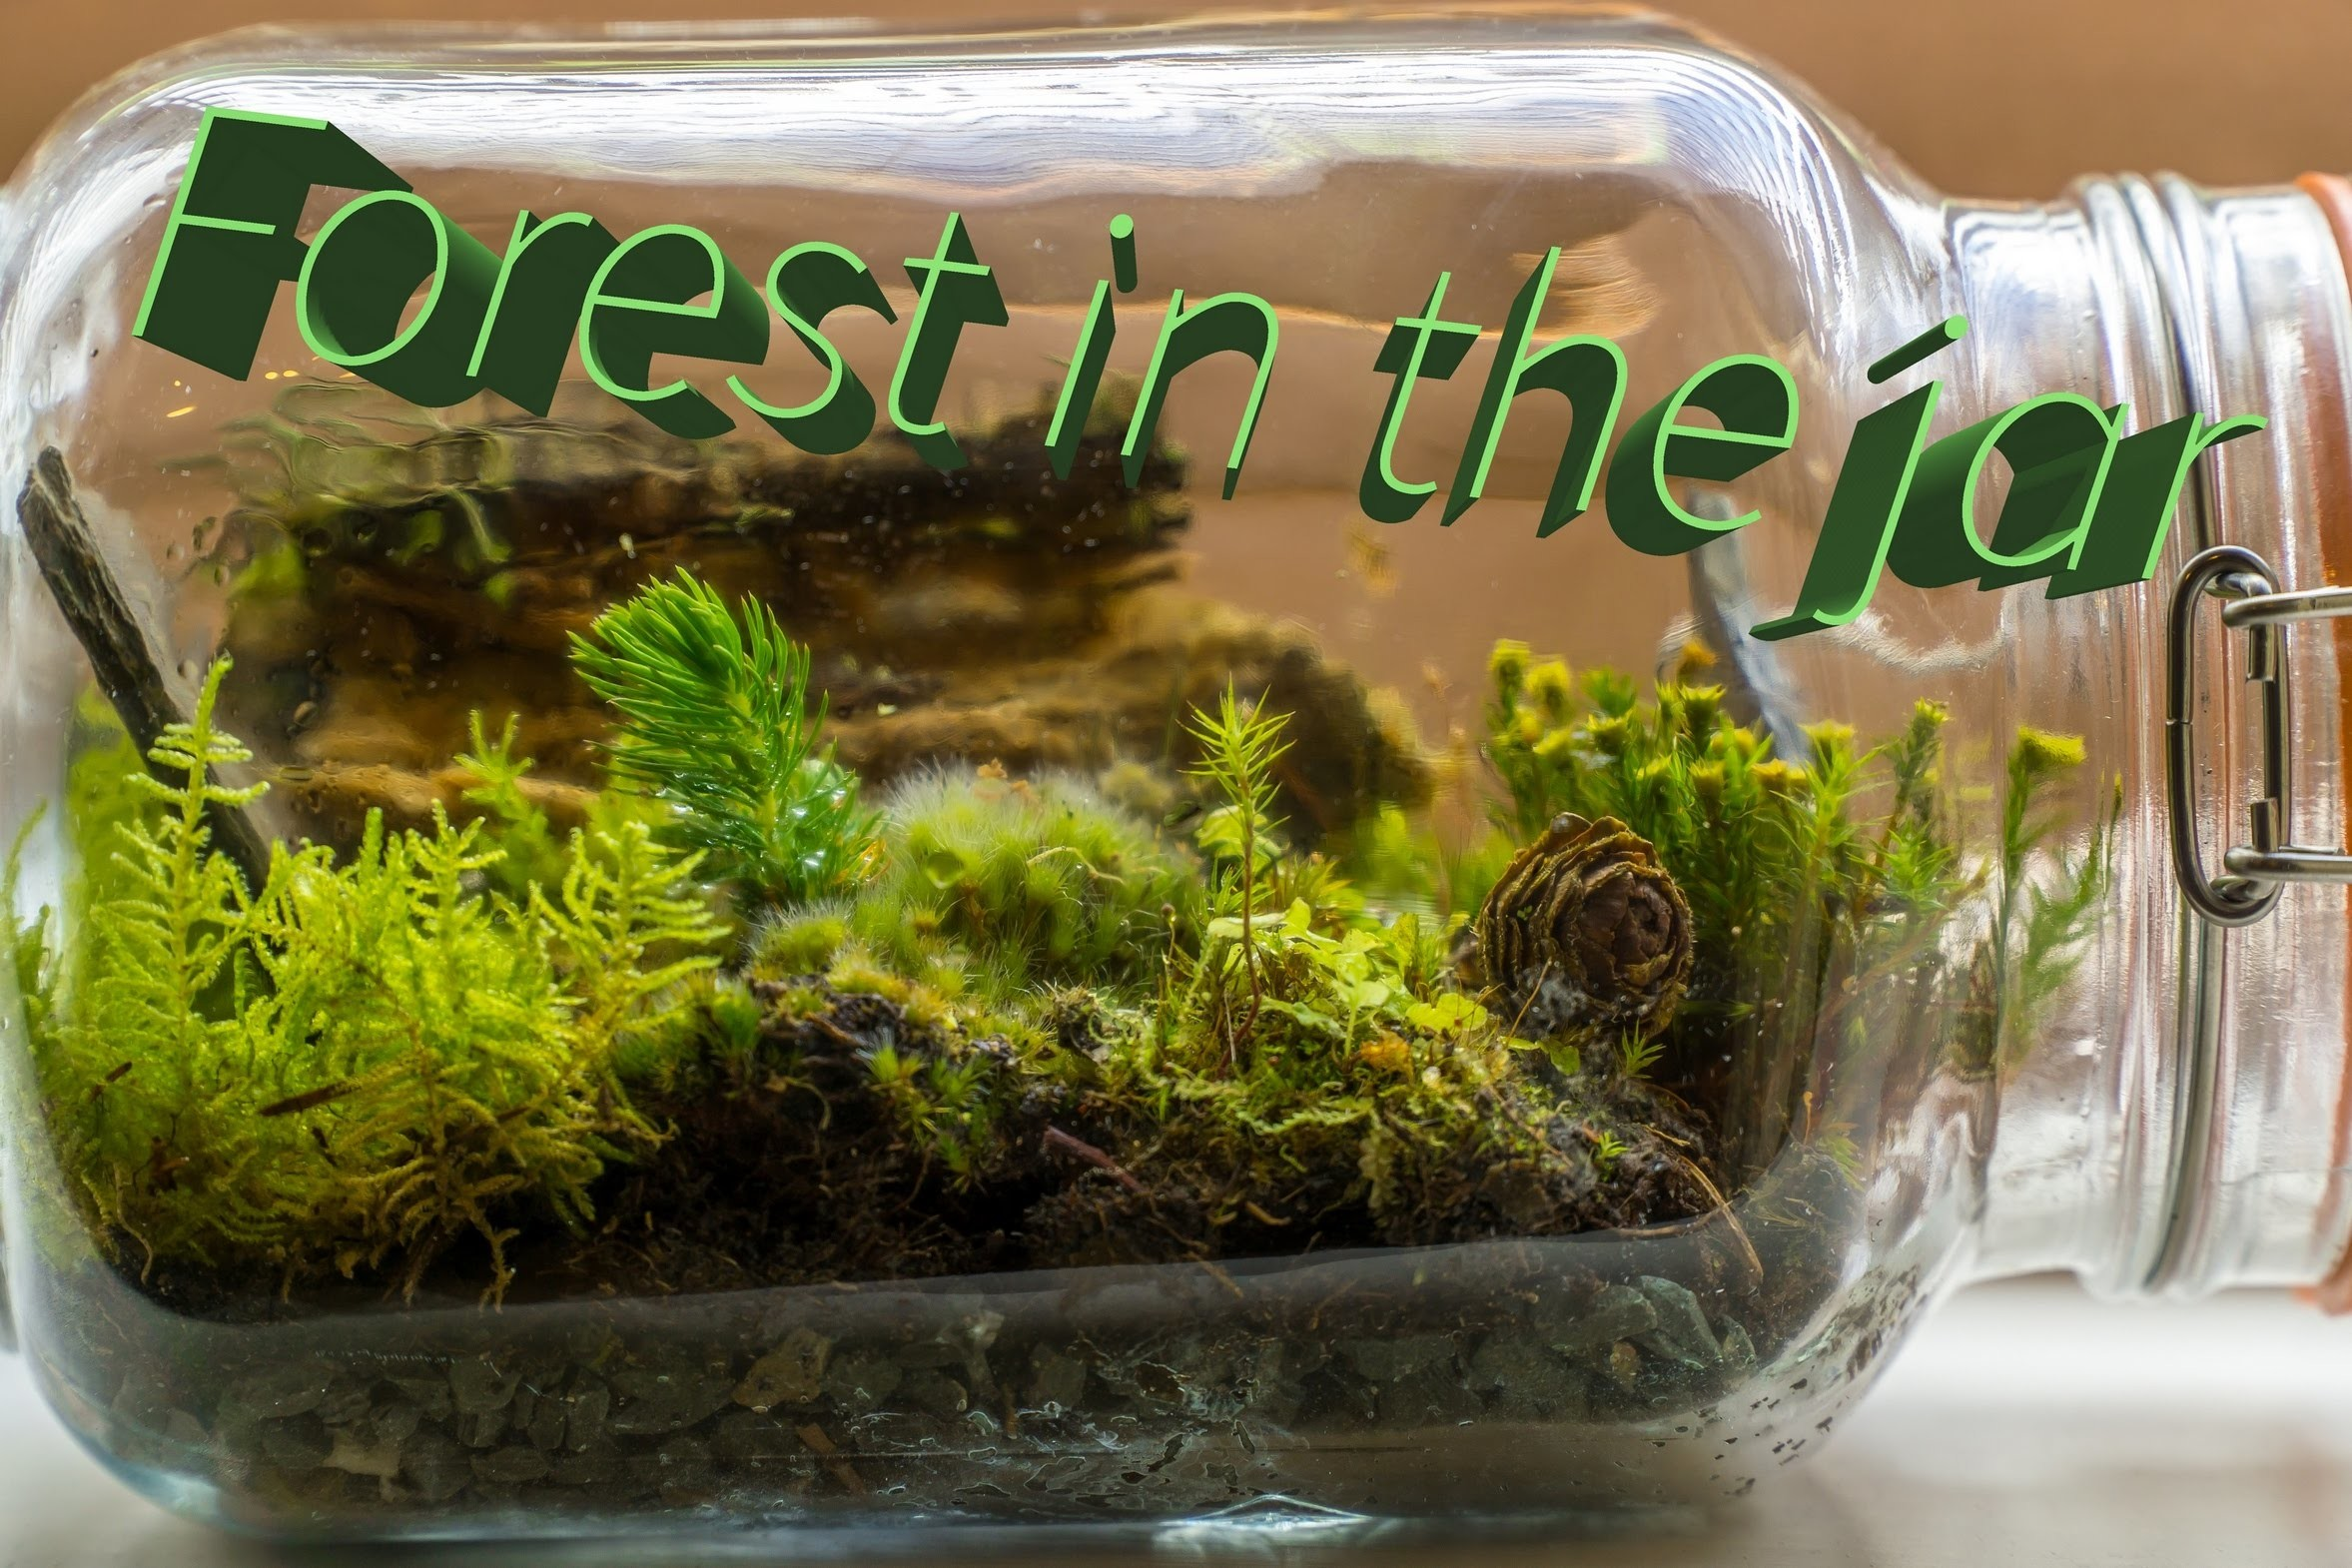 terrarium project making As i'm making a terrarium for the first time this article helped me make a terrarium for my class project a anonymous sep 15, 2017.